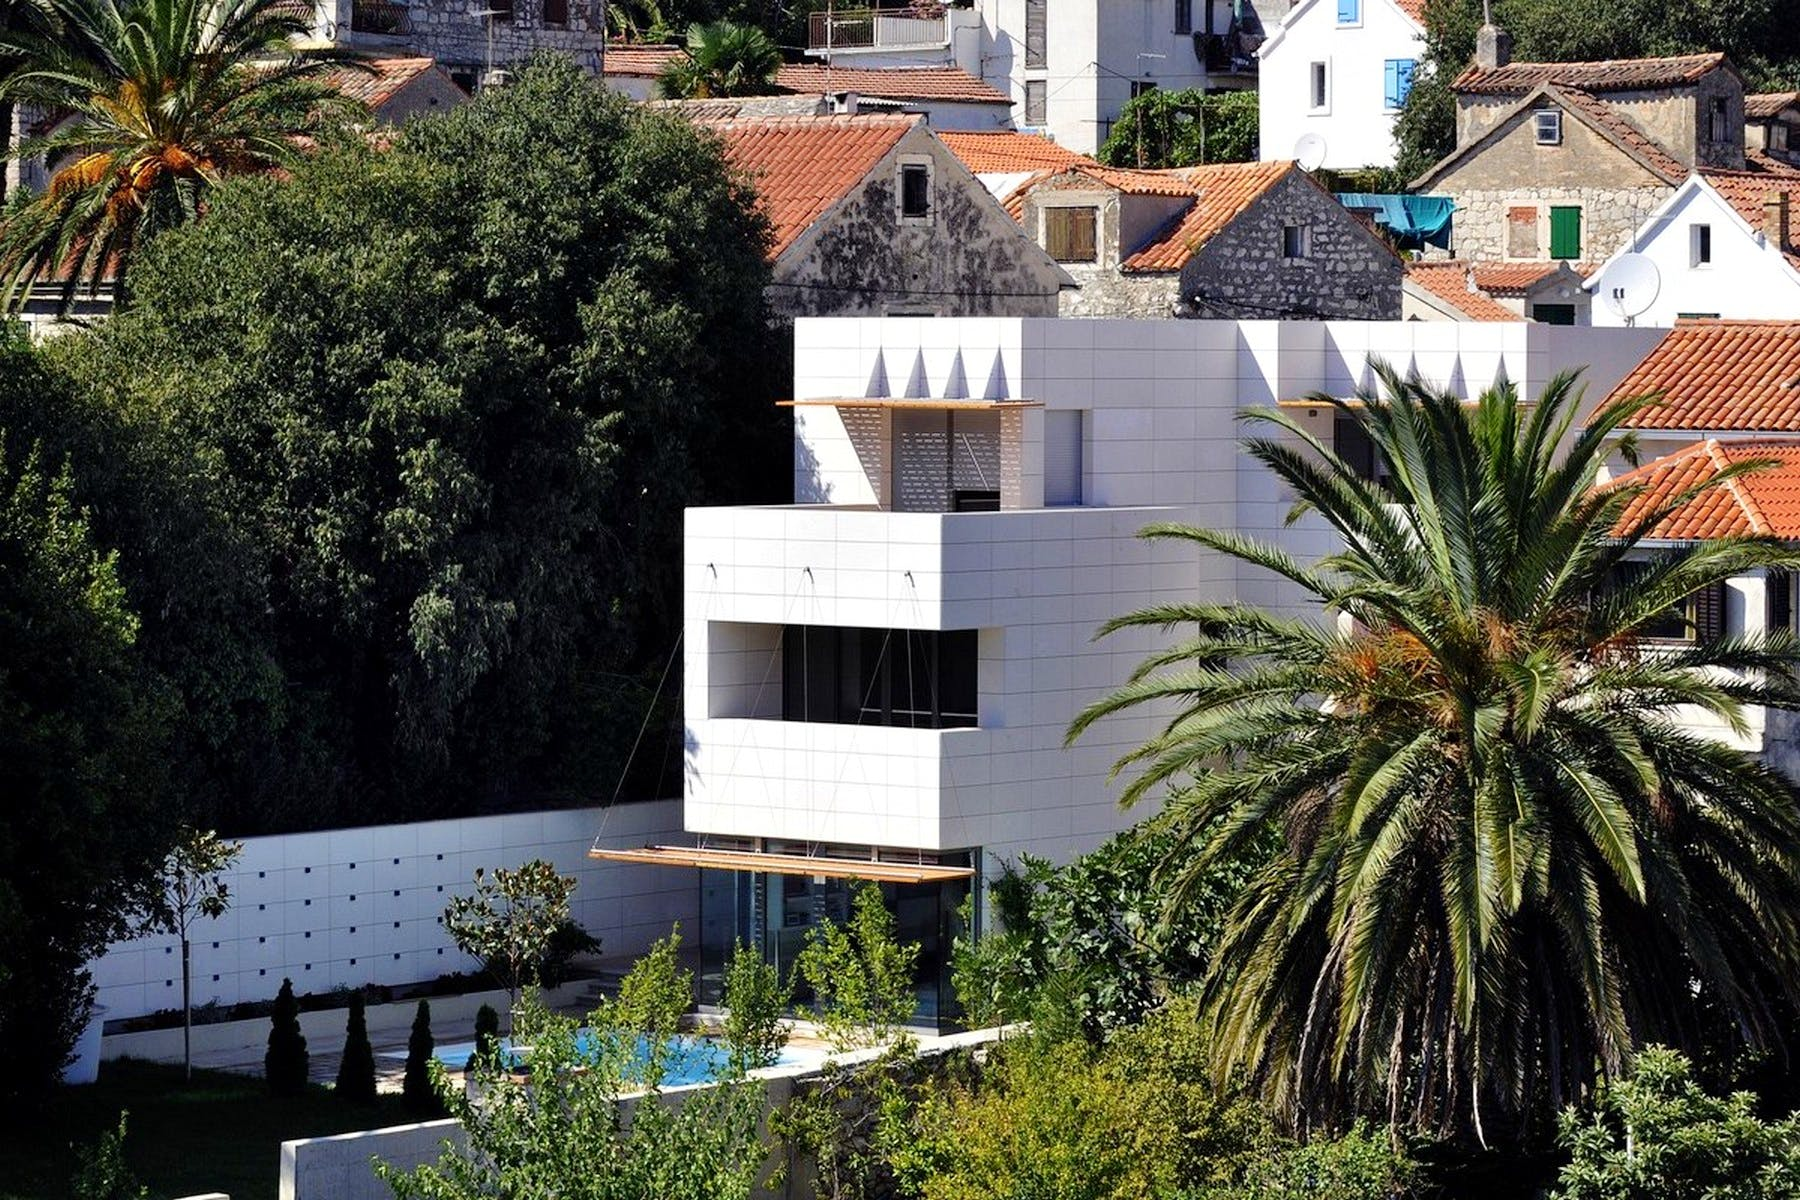 Full view of the villa from a far